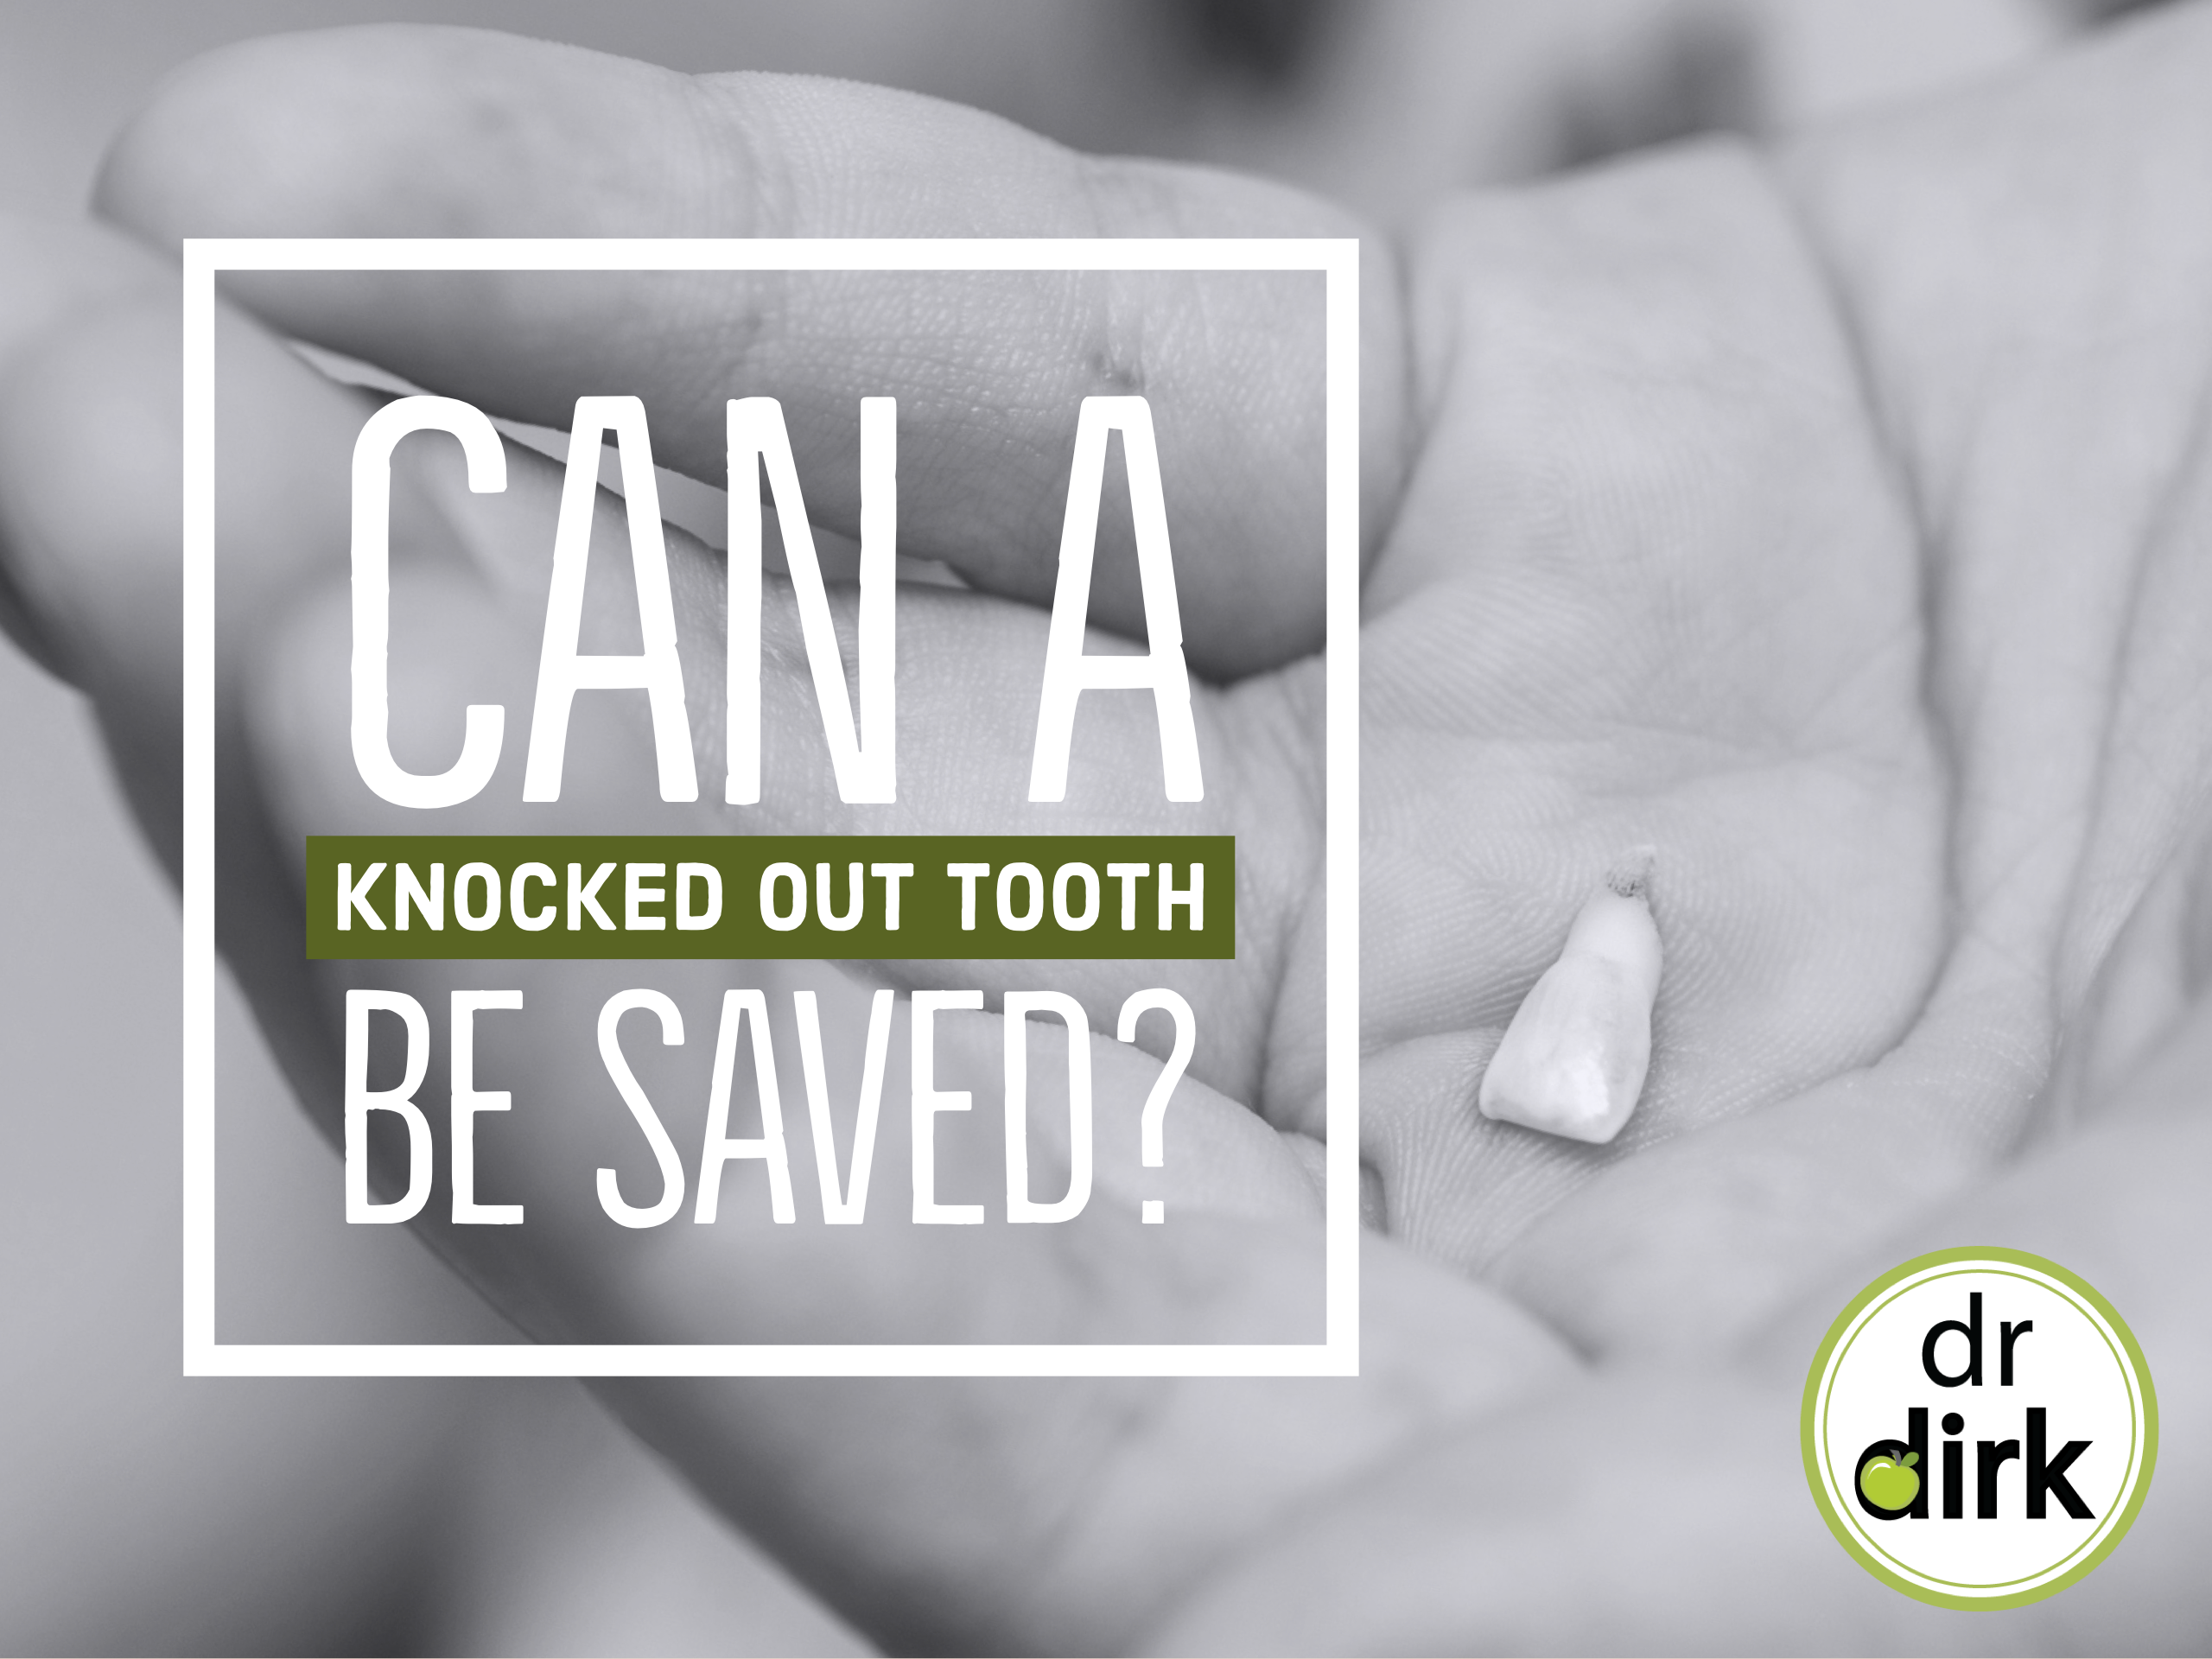 Can A Knocked Out Tooth Be Saved by Your Emergency Dentist in Calgary?